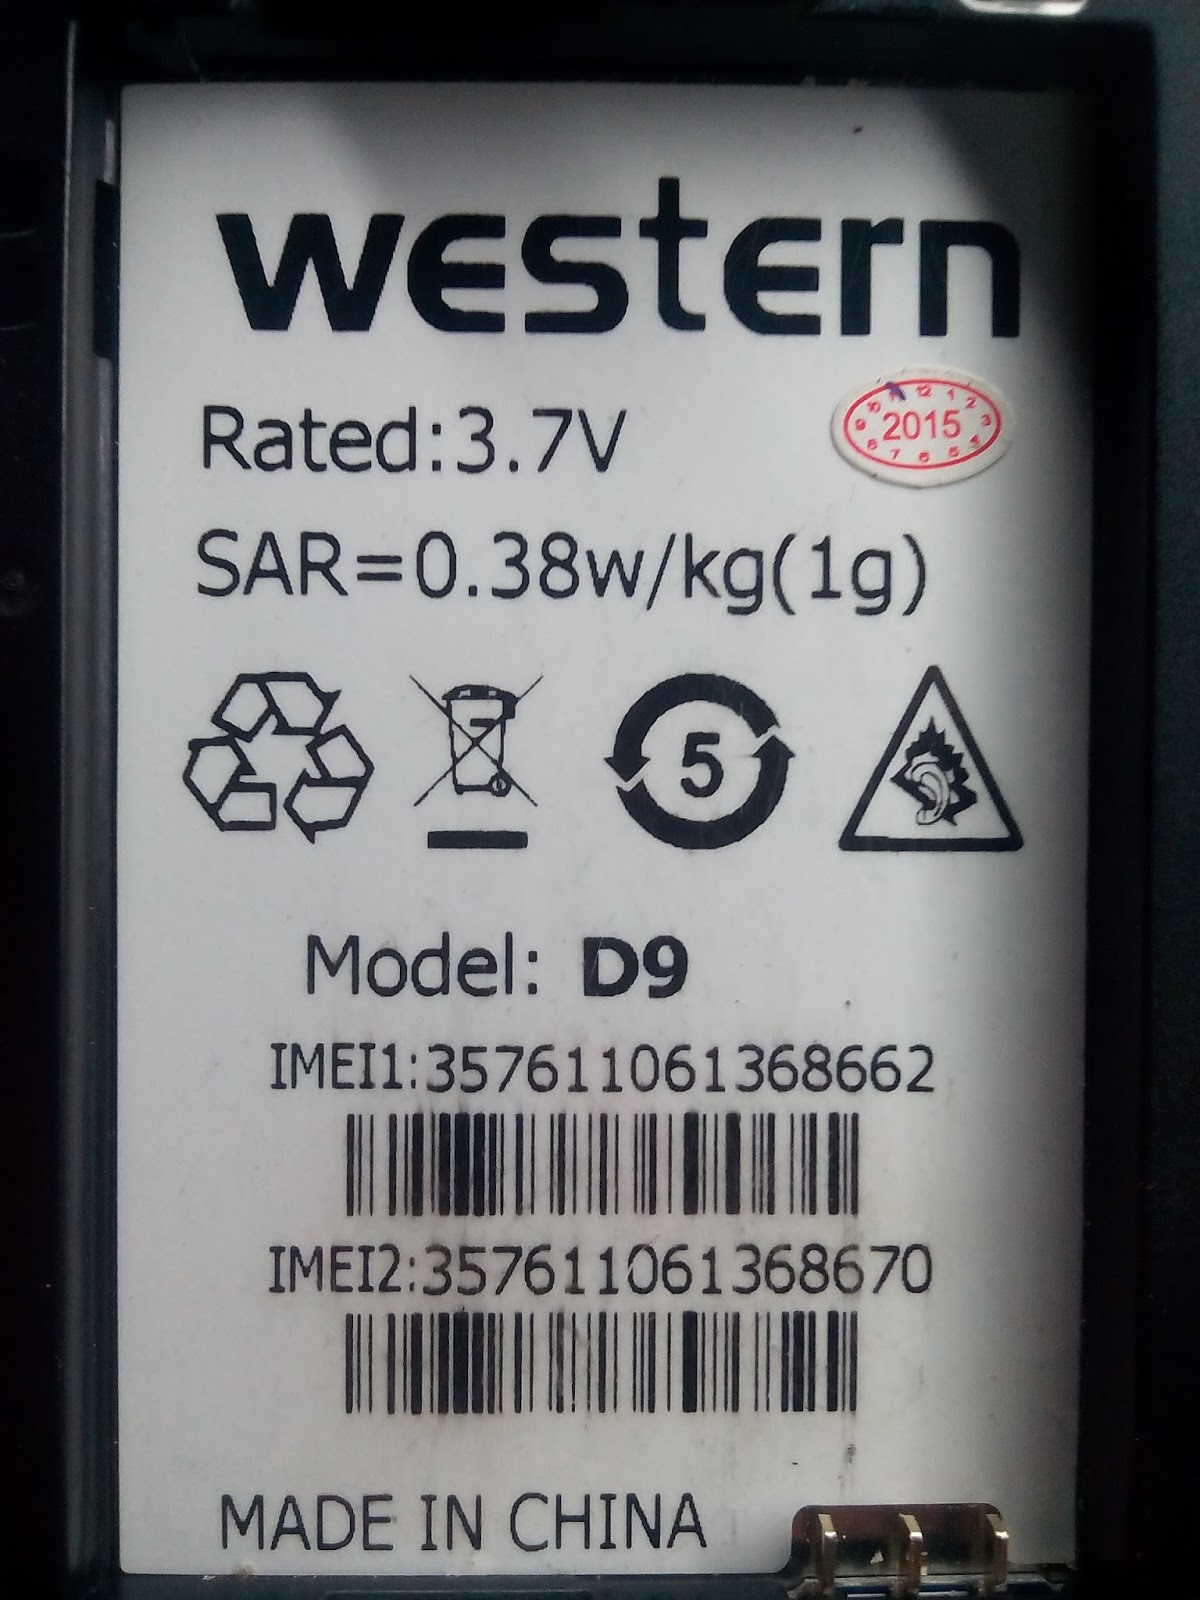 TANGAIL FLASH POINT: western D9 spd6531 flash file without